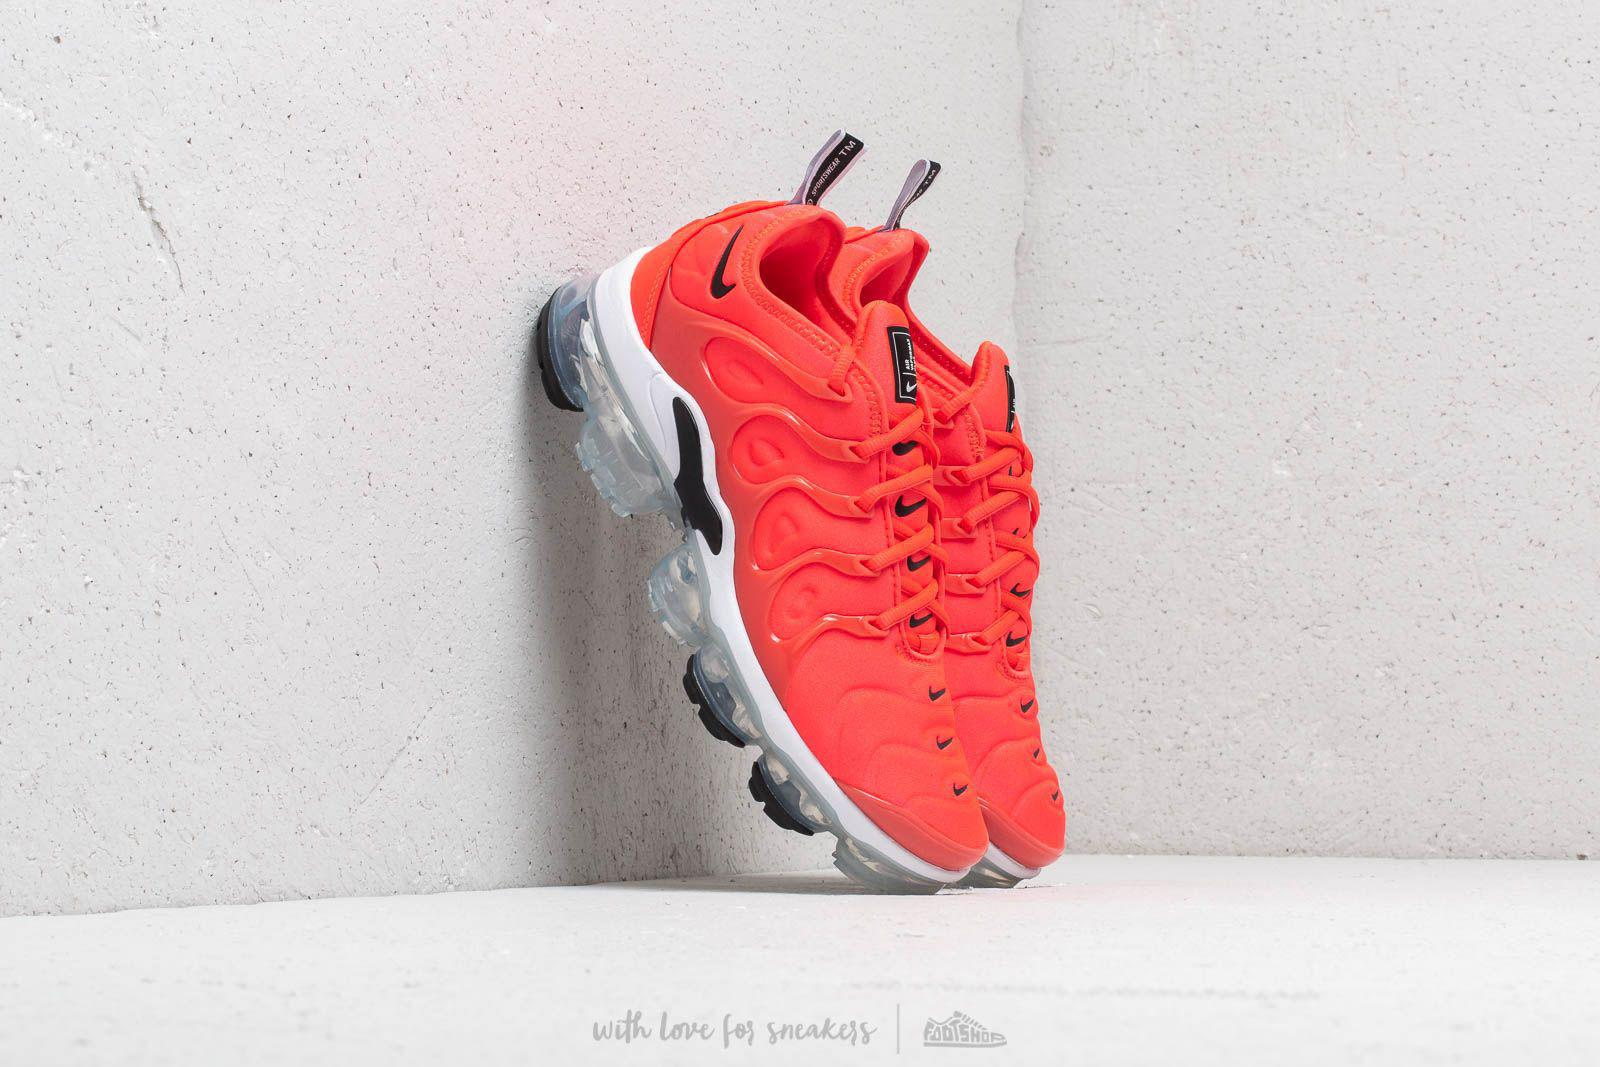 f3af9a4d09ded Lyst - Nike Air Vapormax Plus Bright Crimson  Black-white in Red for Men